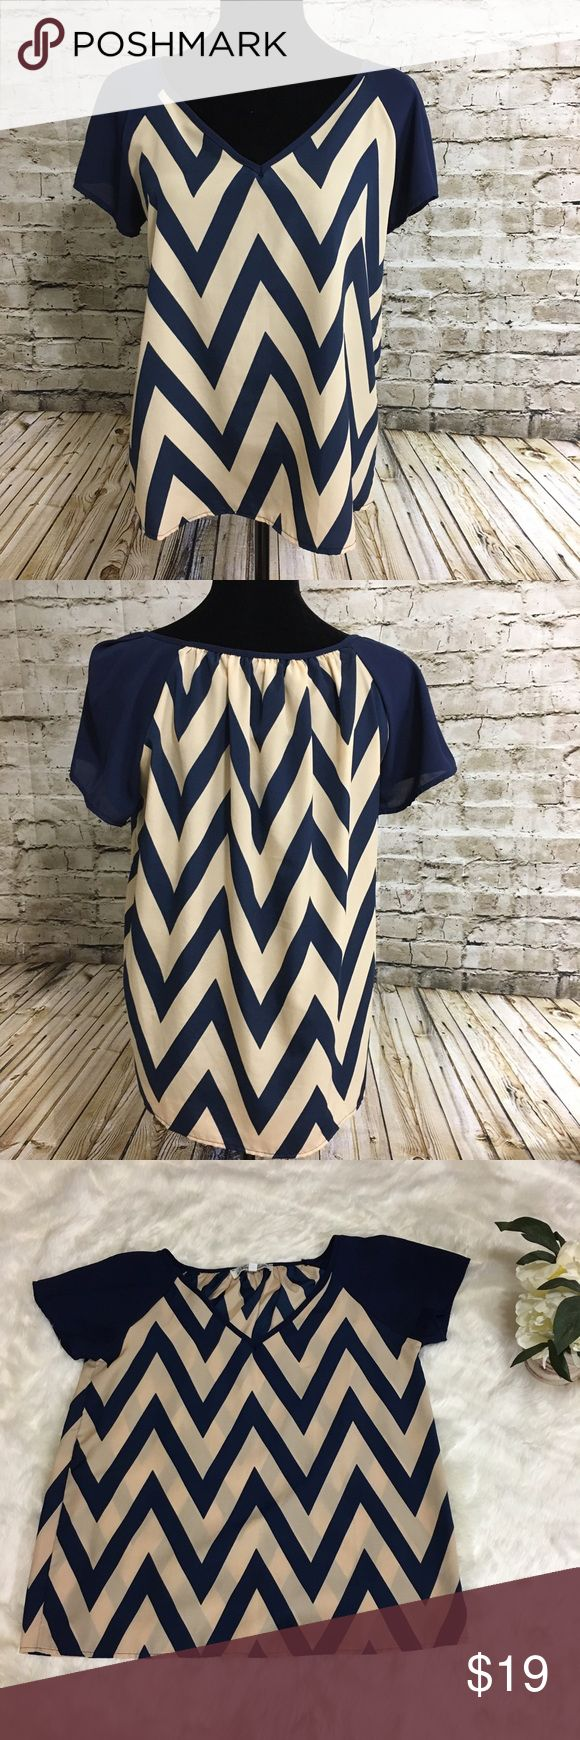 "Chevron Top Blouse Navy Blue cream Elegant top. Flowy, loose fitting. Purchased at Francesca. Worn once. Perfect condition. Great for traveling ( doesn't wrinkle). Measurements: armpit to armpit 19"", back to hem 24"". Annabella Tops Blouses"